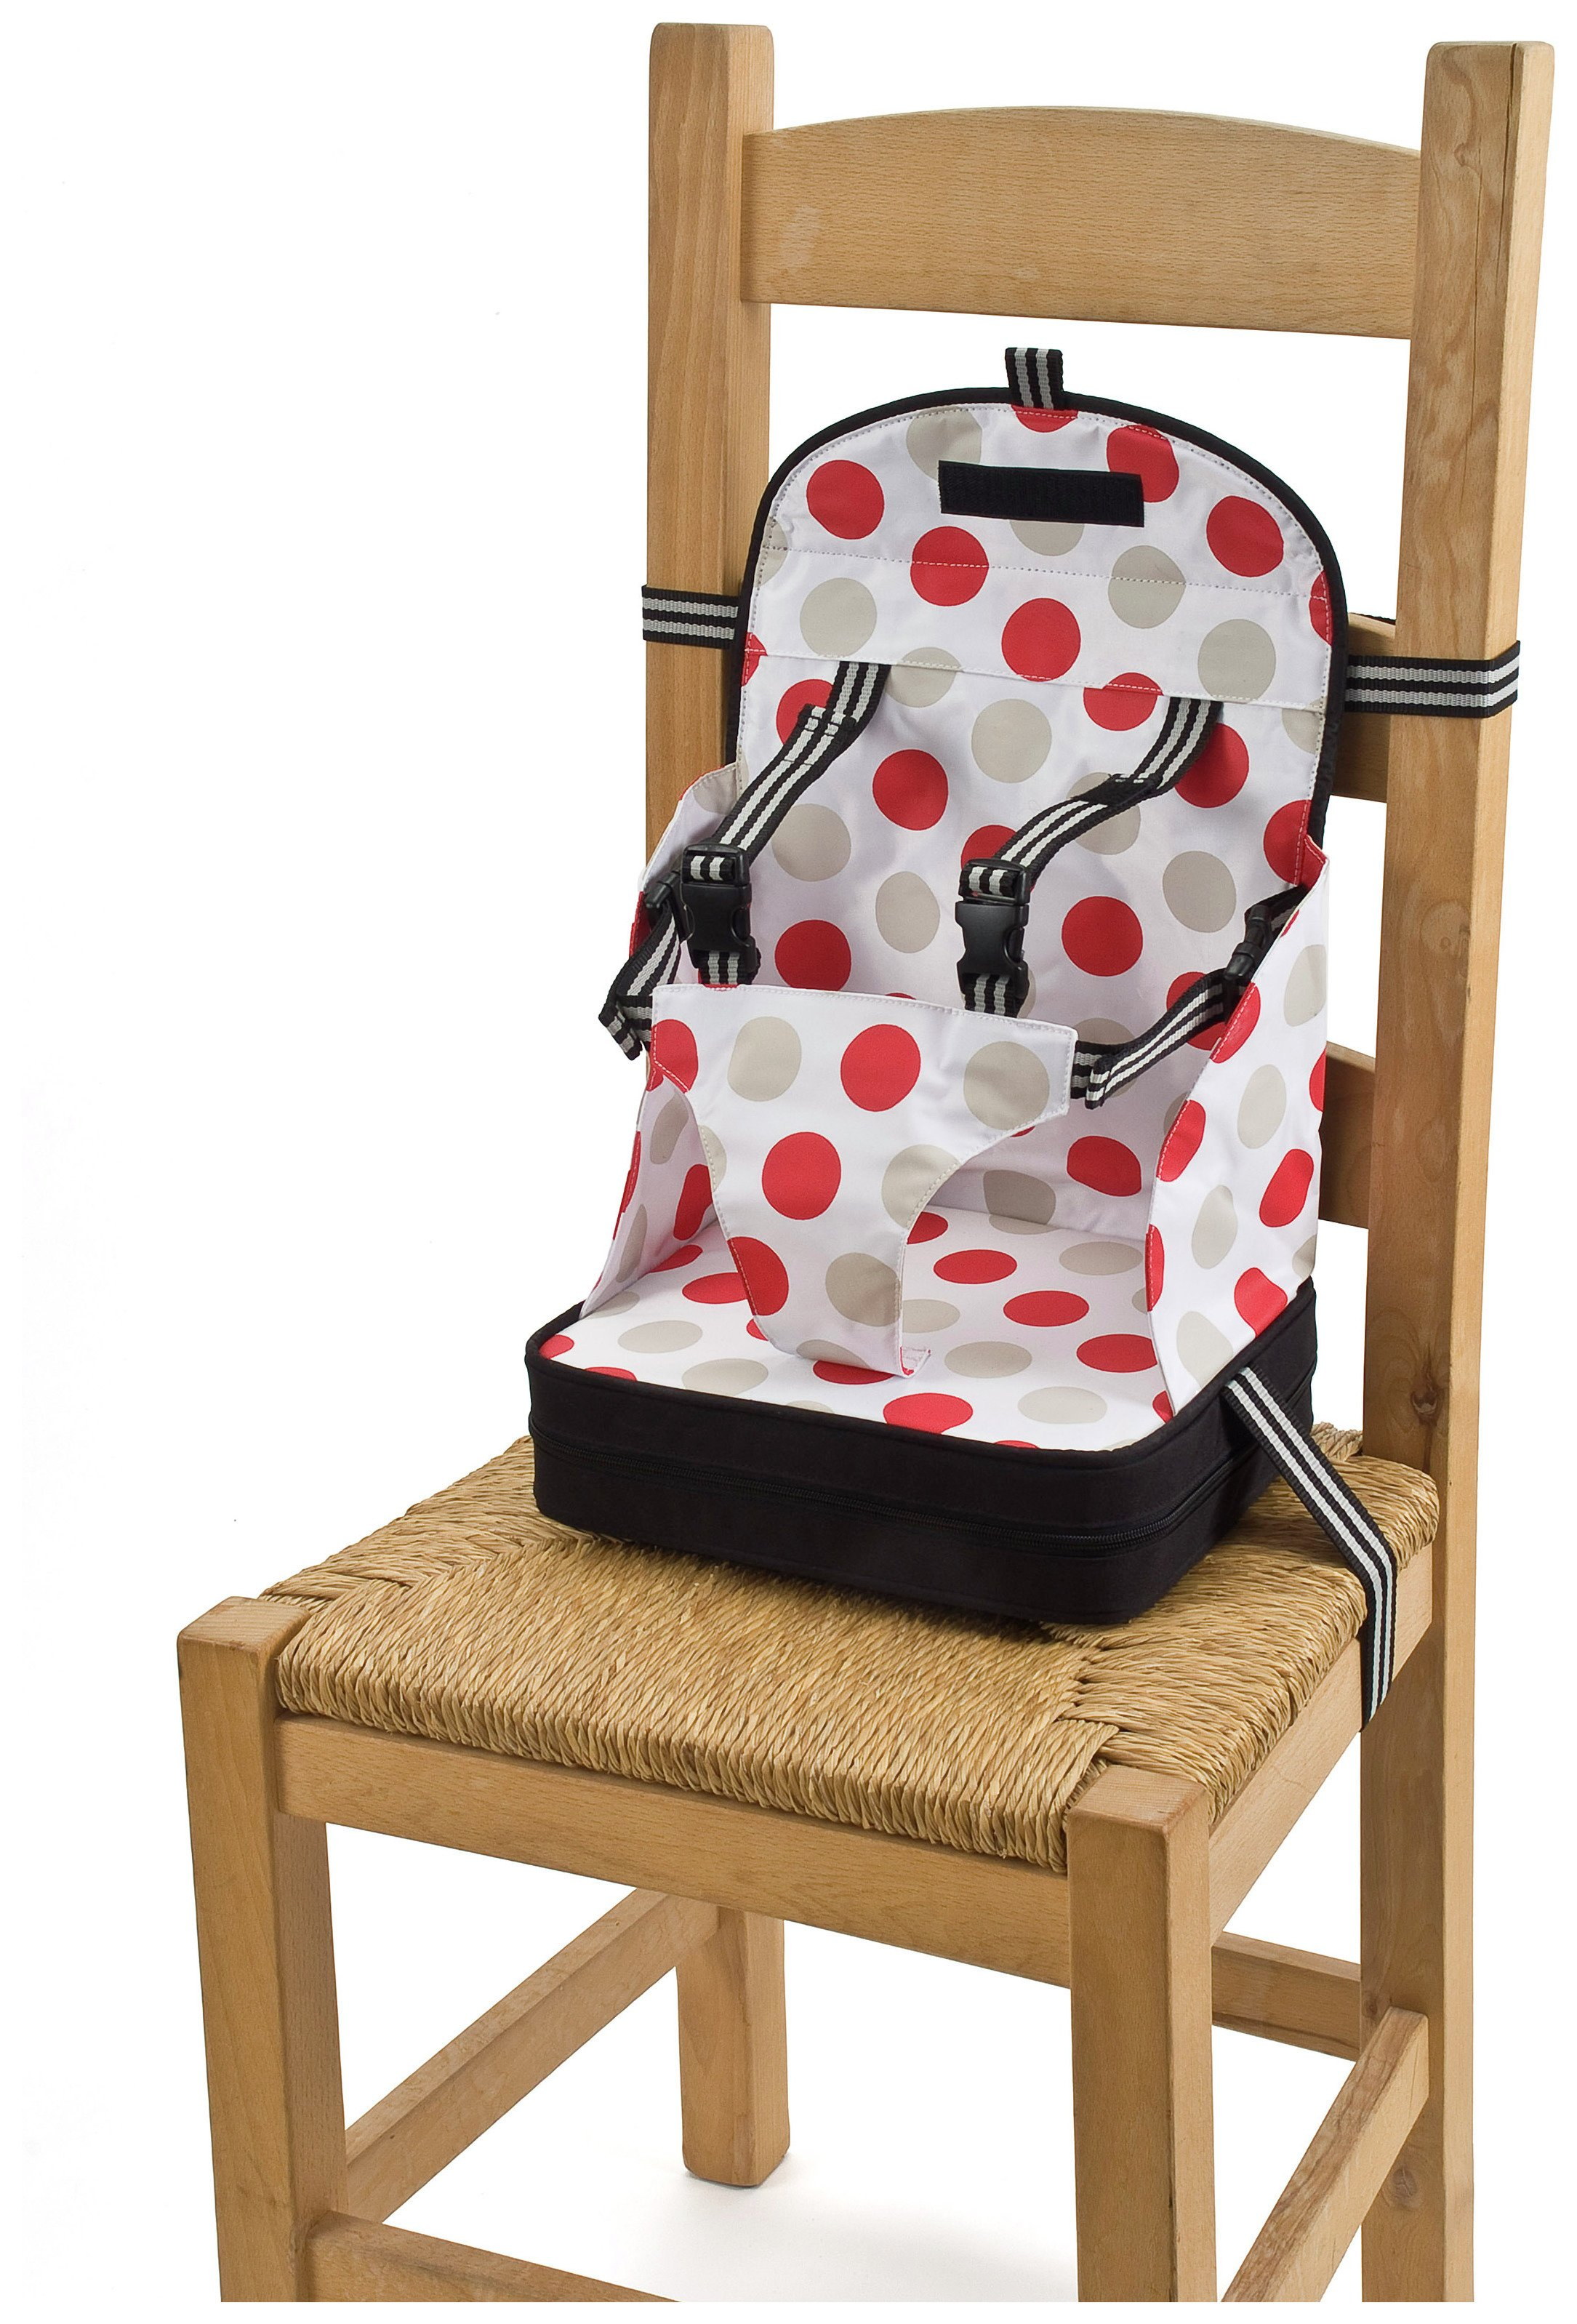 Image of Baby Polar Gear - Booster Seat - Black with Large Spot Print